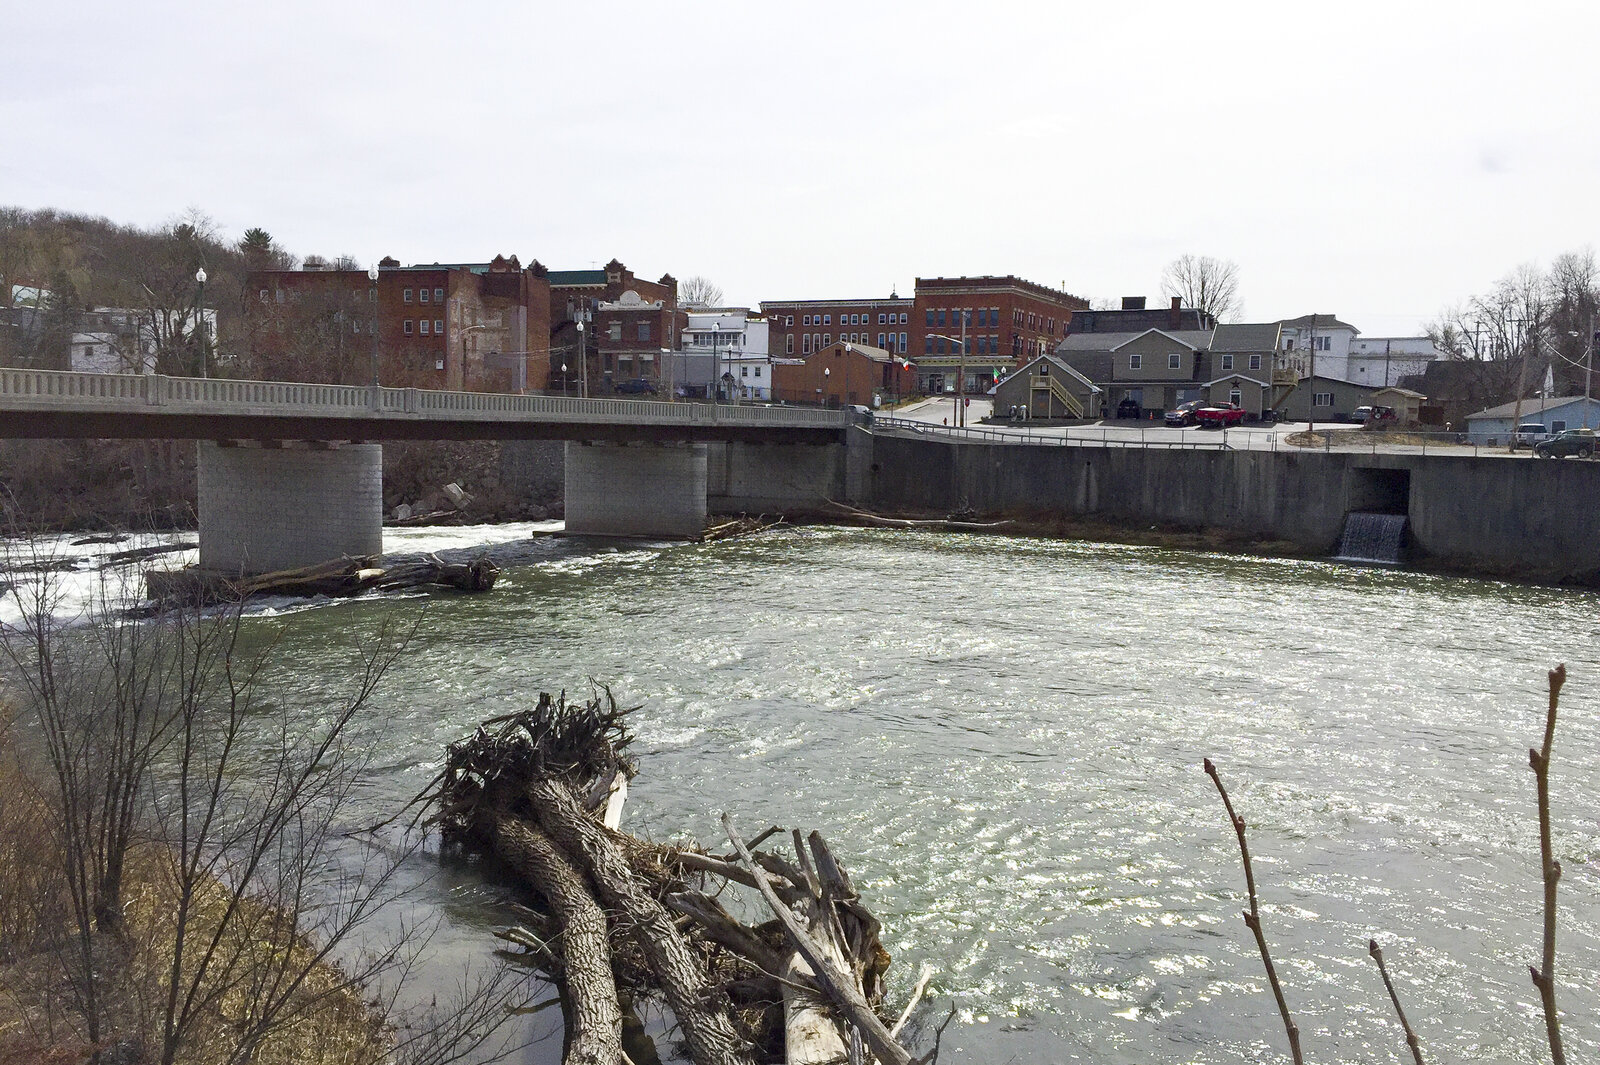 The village of Hoosick Falls, N.Y., sits along the Hoosick River in eastern New York. Elevated levels of a suspected carcinogen known as PFOA were found in the village's well water, which is now filtered.